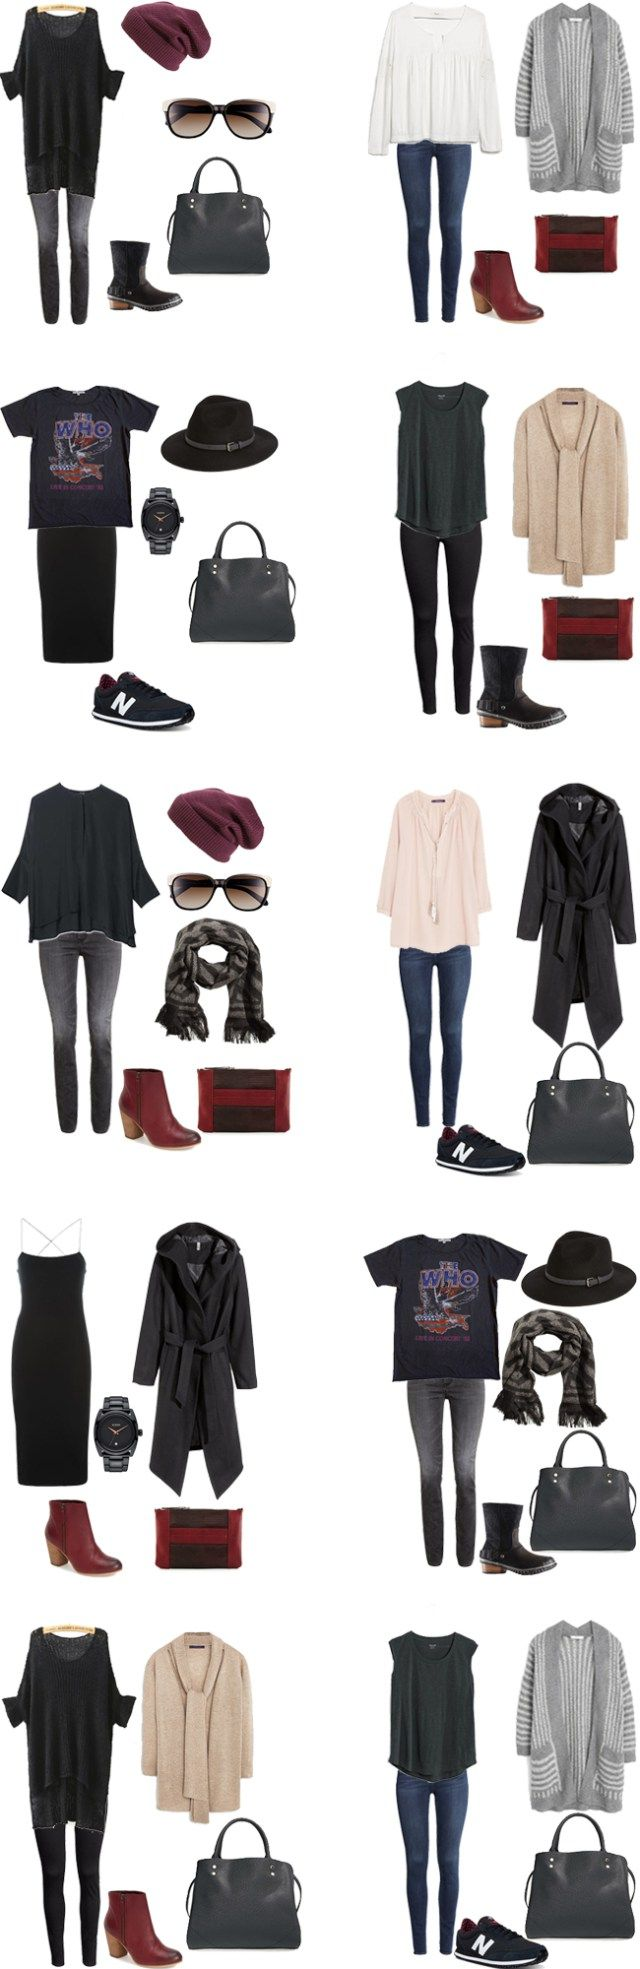 What to Wear in New York City Winter edition Outfits 1-10 #packinglight #travellight #traveltips